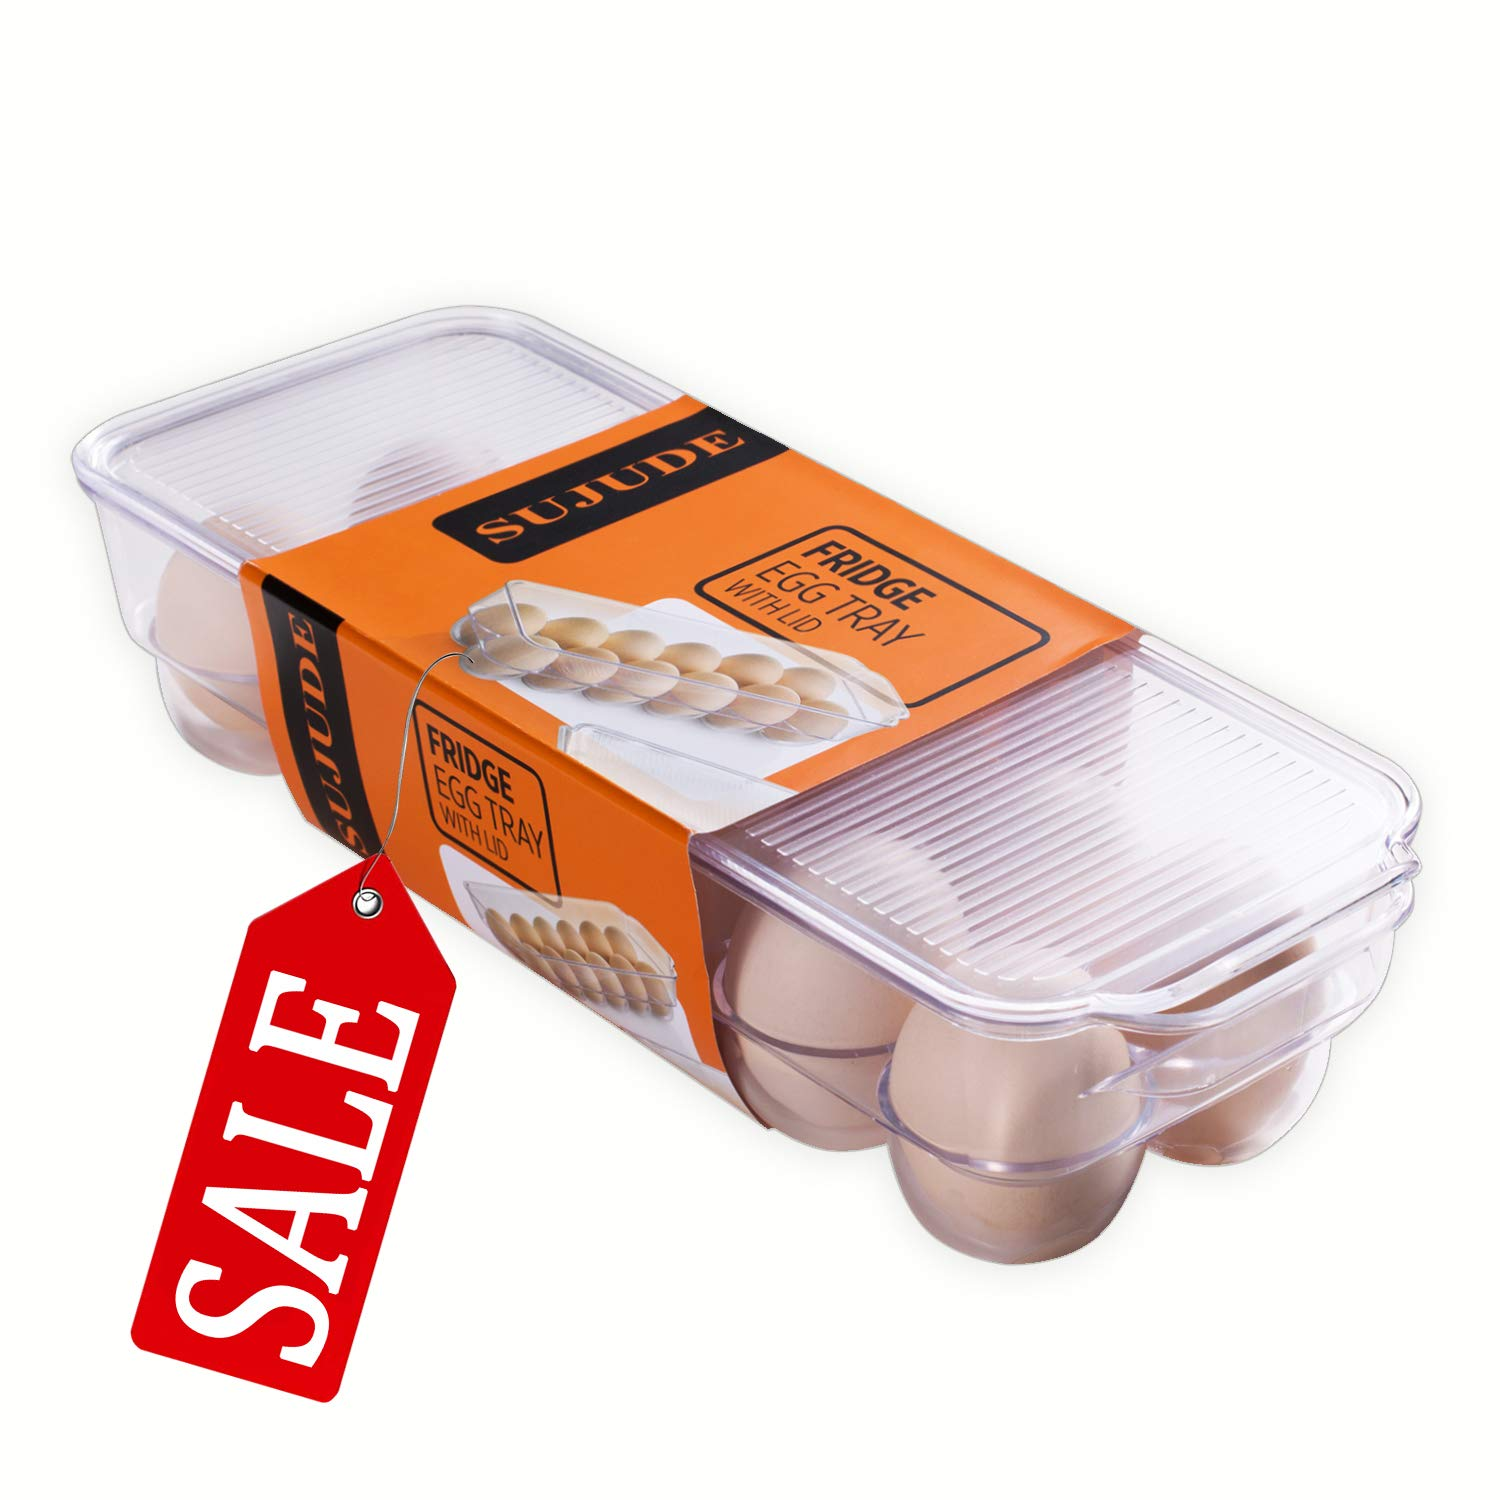 12 Egg Holder, Egg Tray With Lid, Egg Storage Container for Kitchen Refrigerator (Pack of 1)